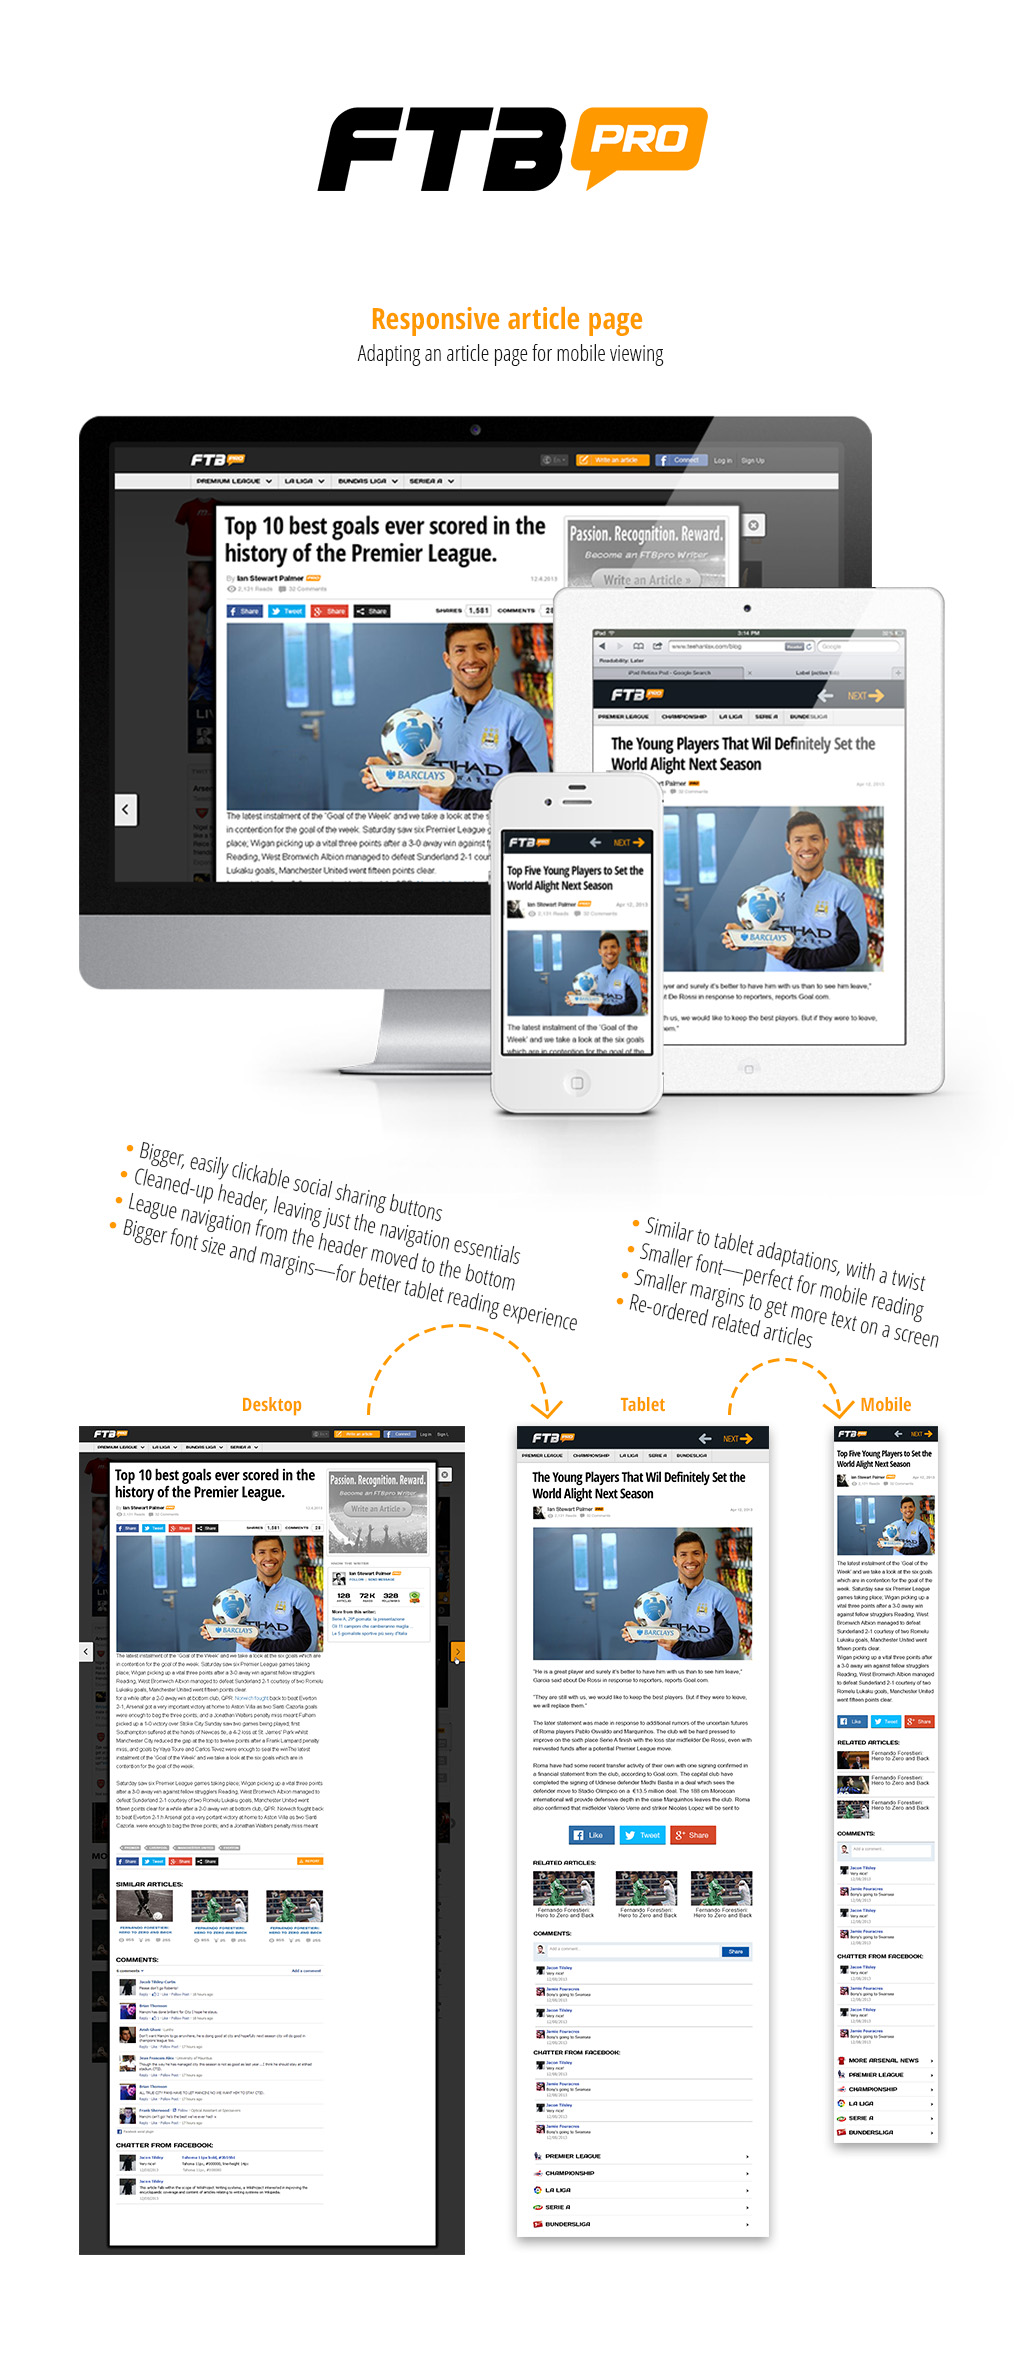 FTBPro articles Responsive article page design